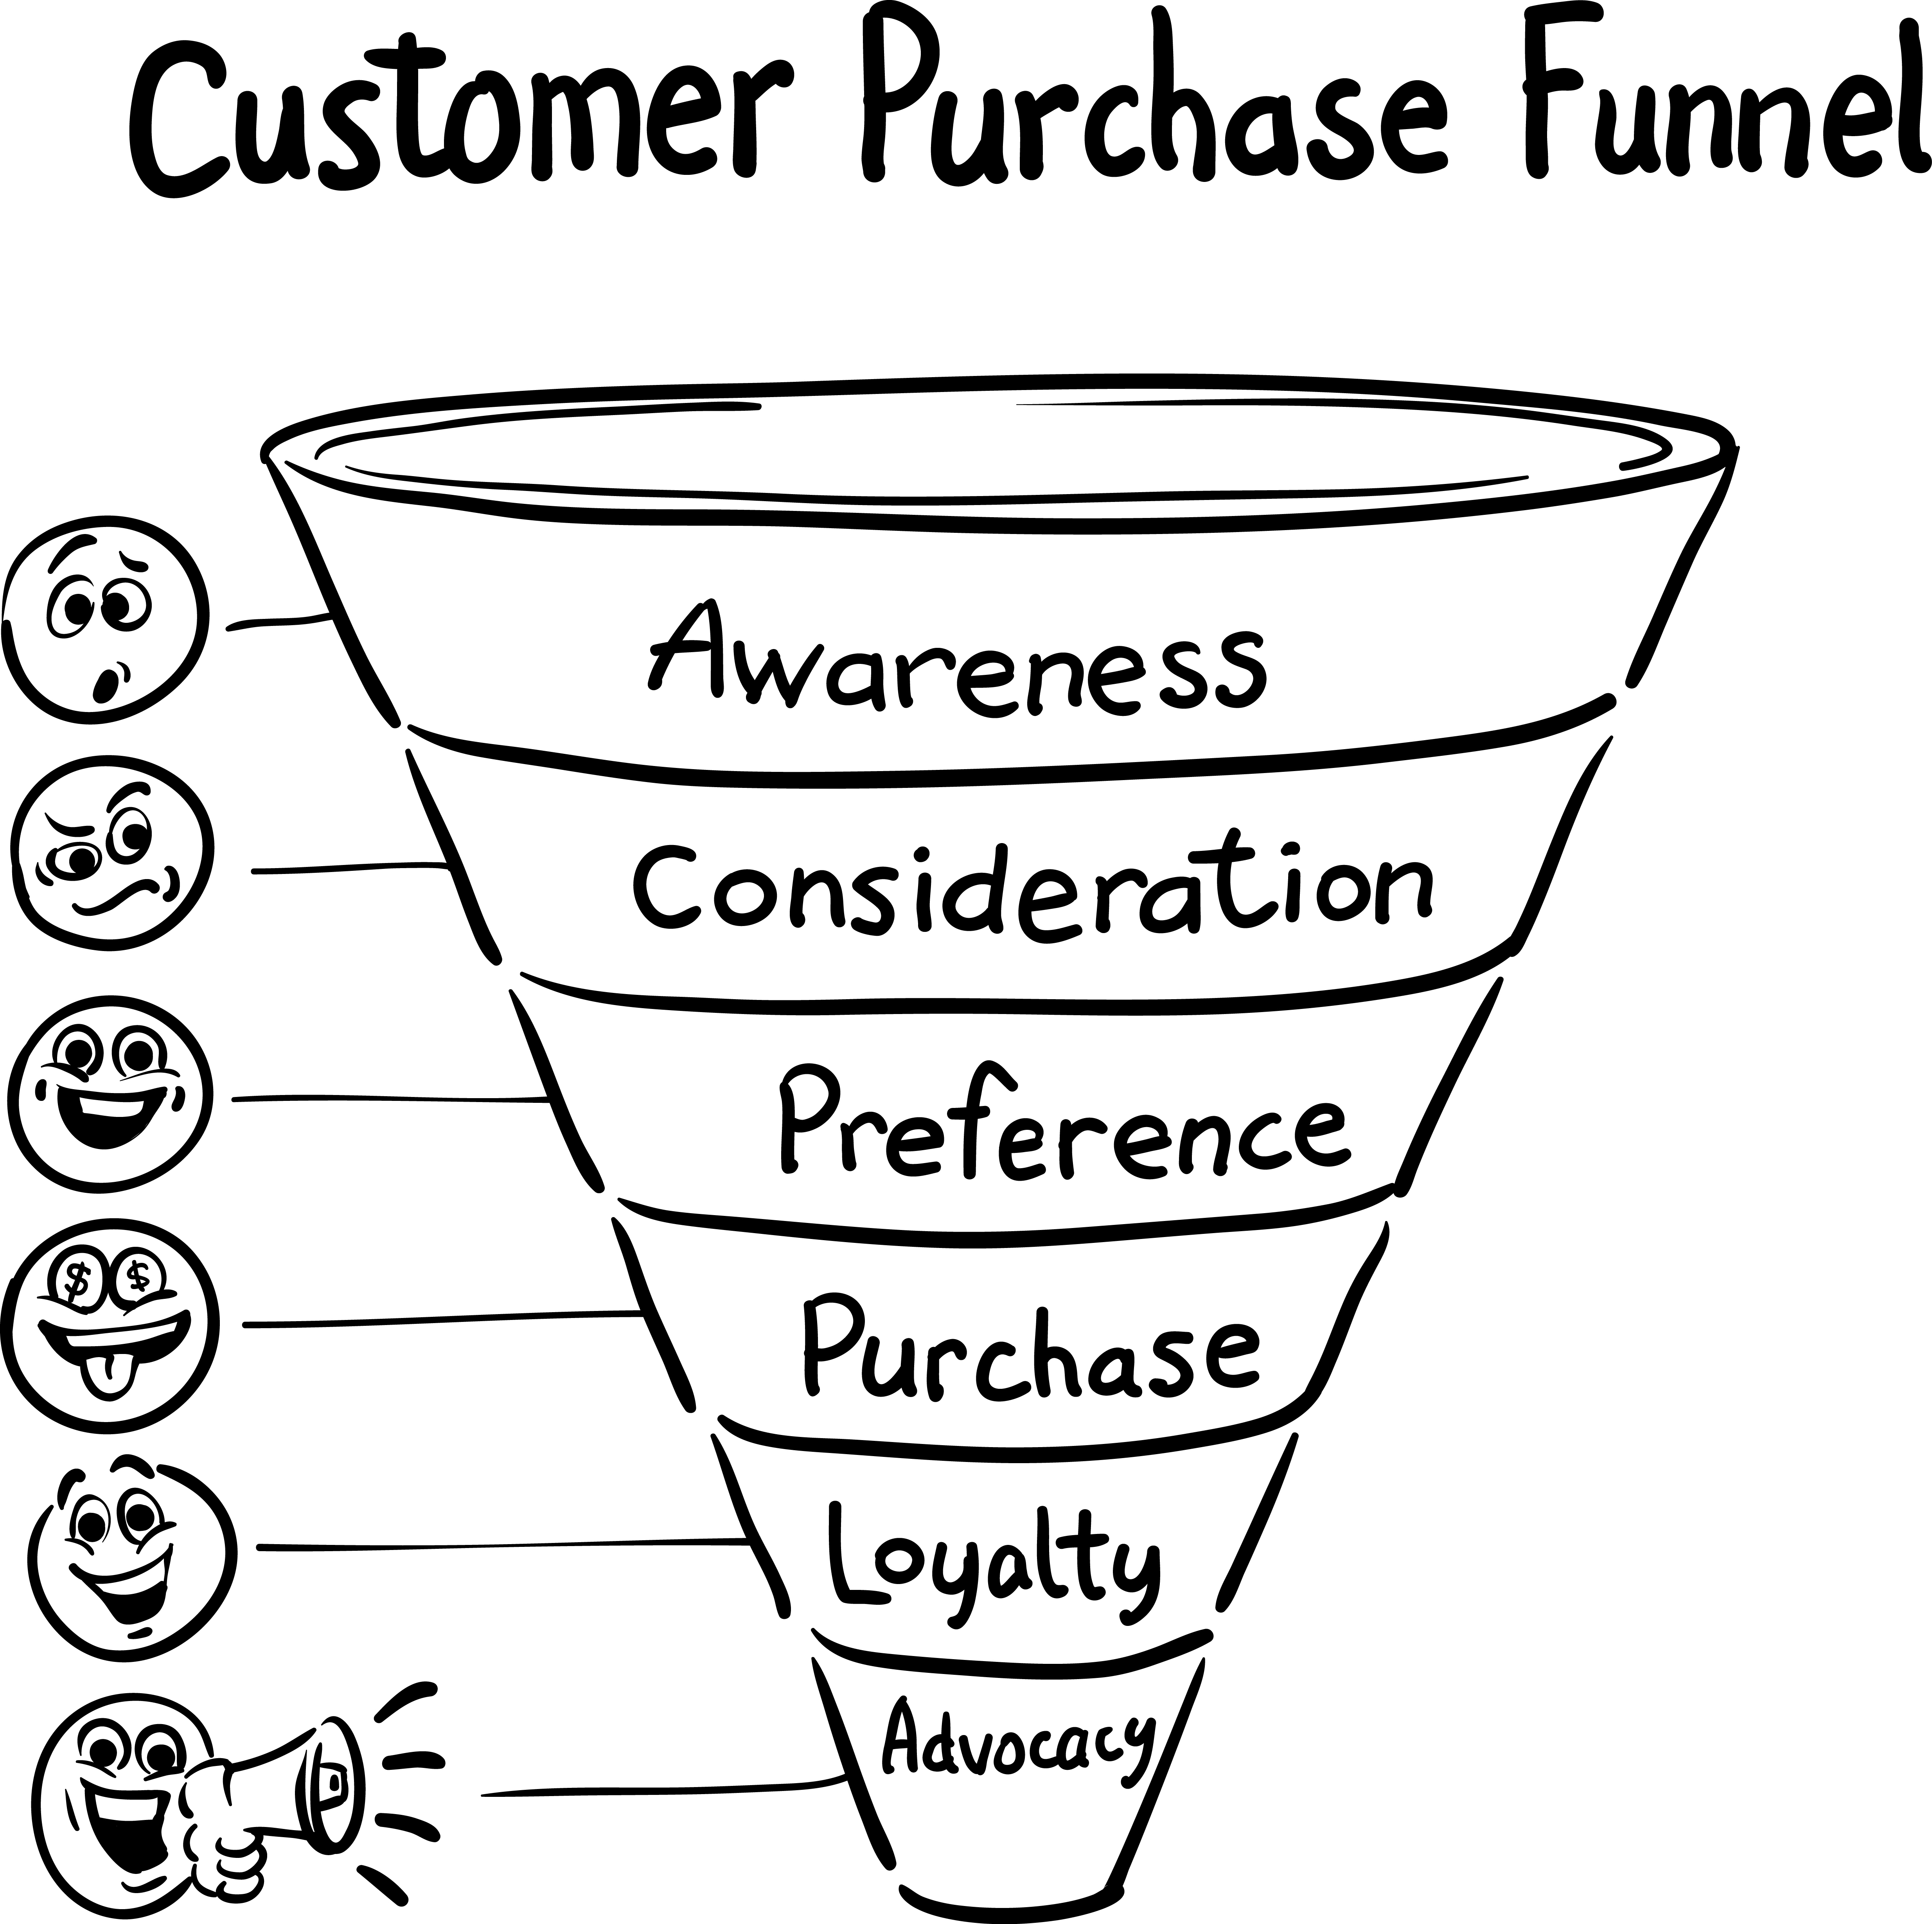 Public Relations And The Customer Journey